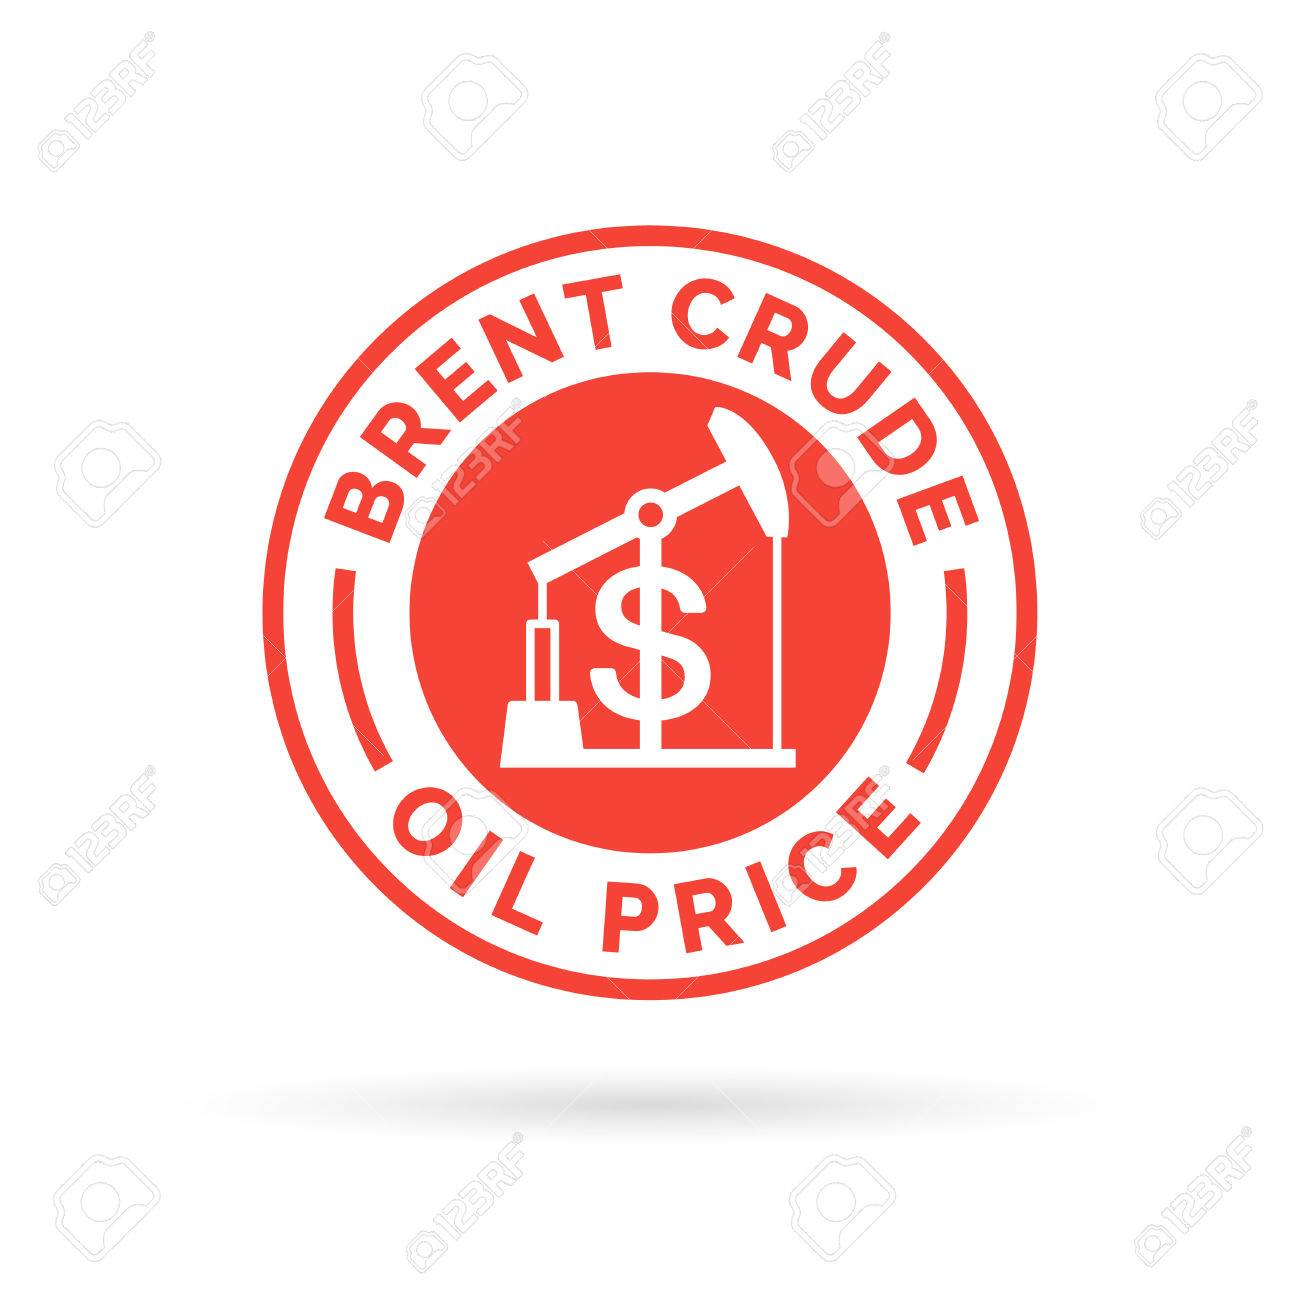 Price of brent crude oil icon stamp with red oil pump symbol